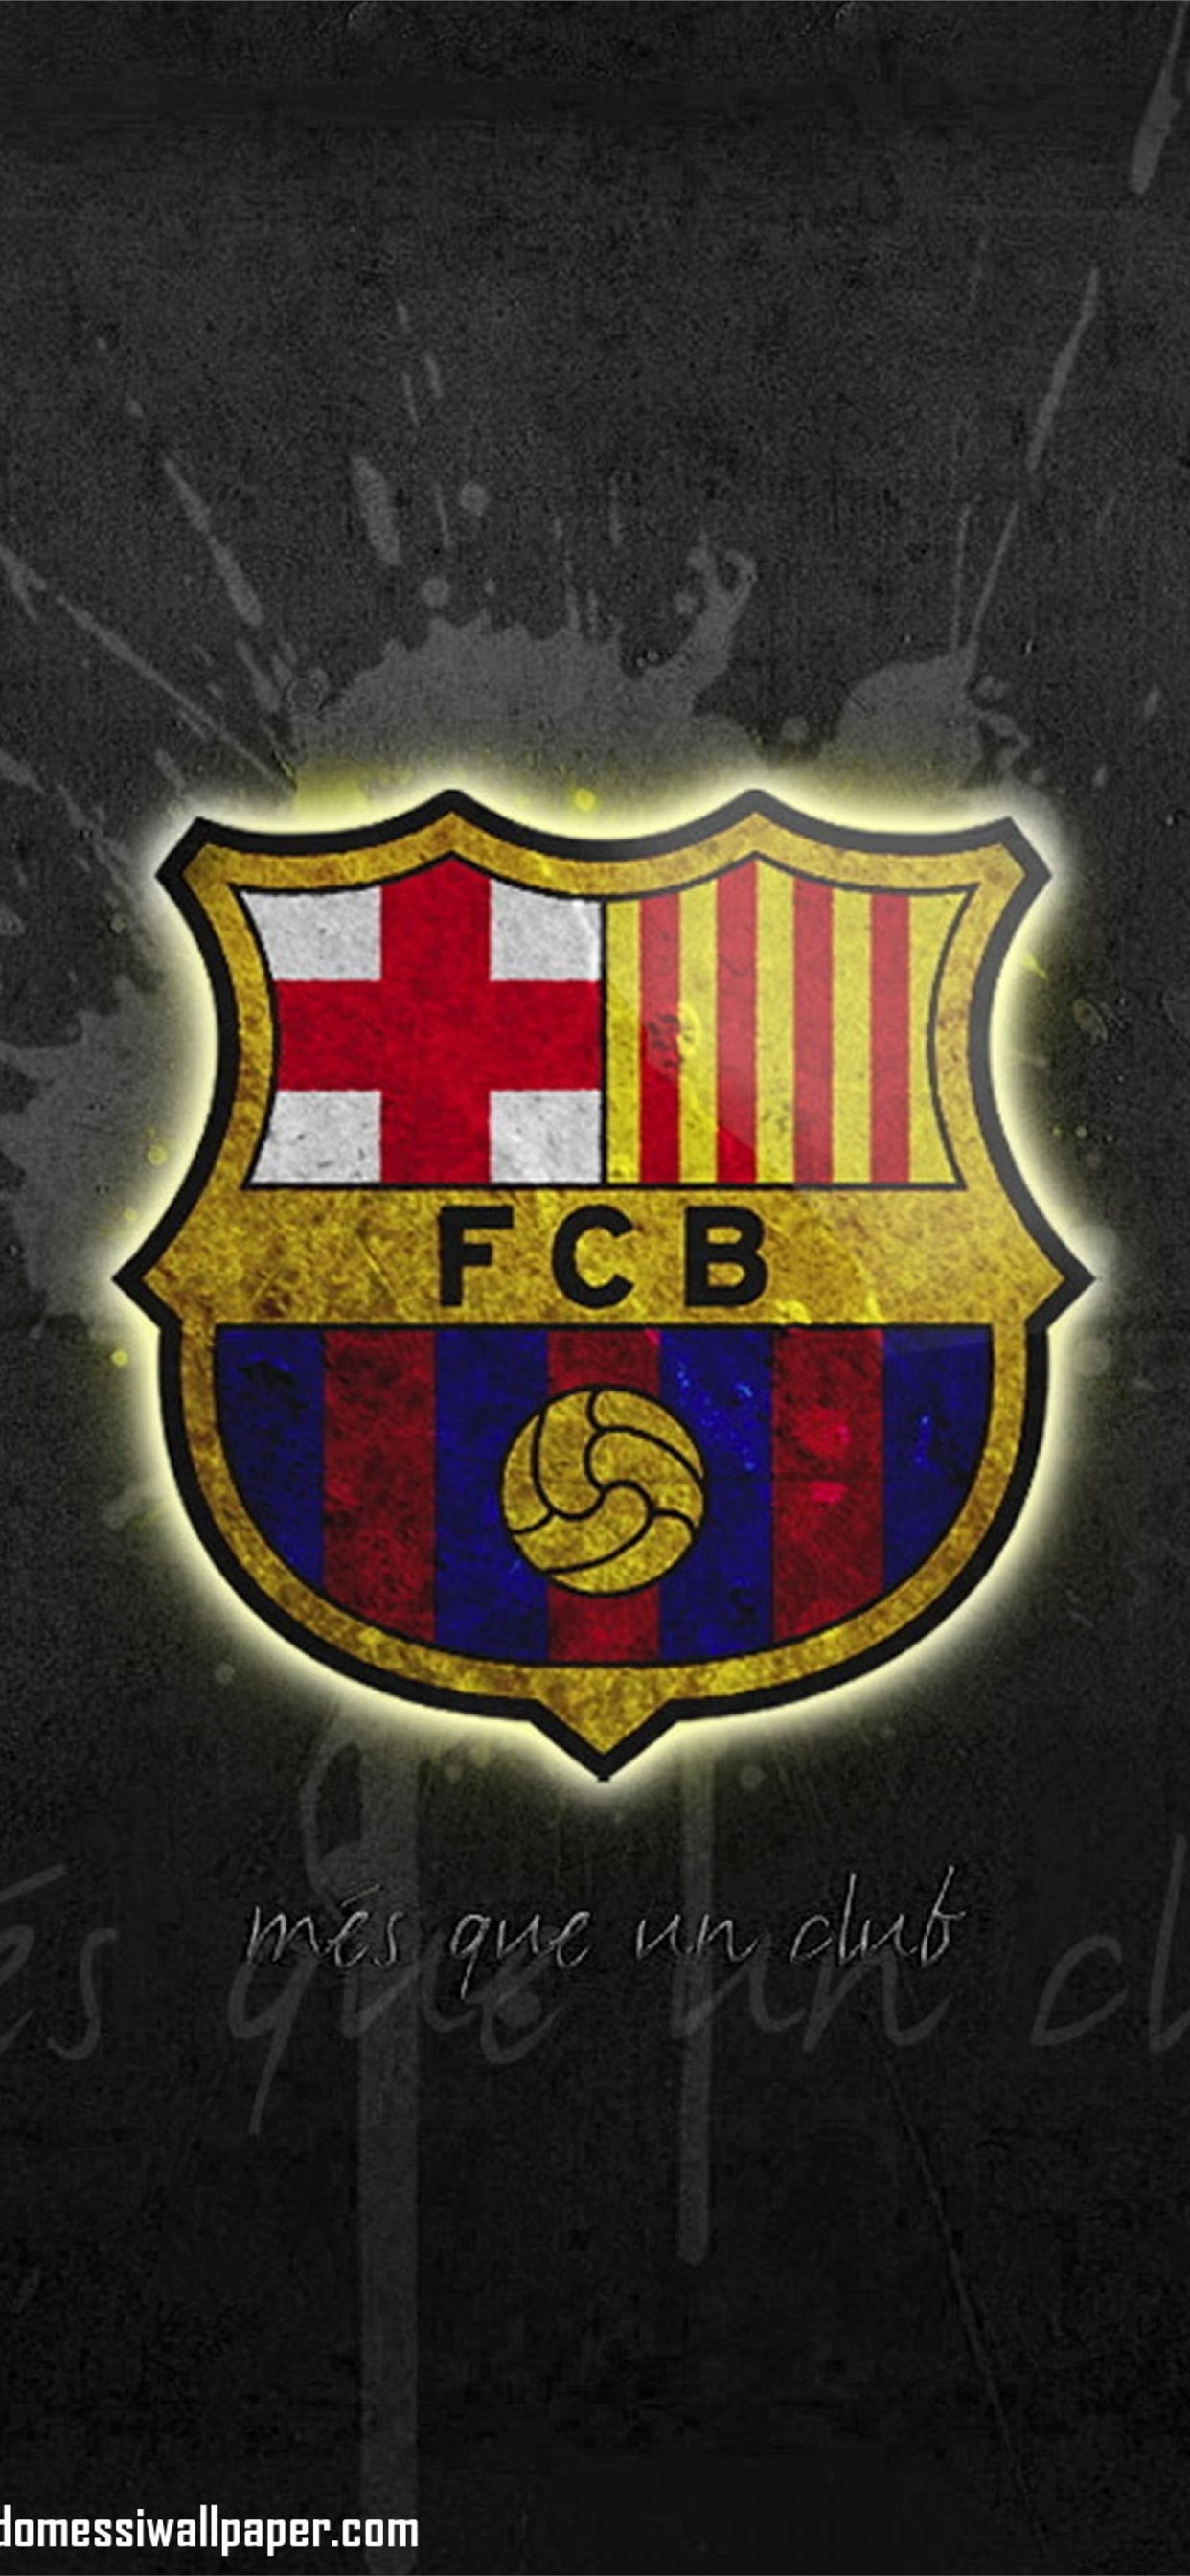 77 Fc Barcelona On Play Iphone X Wallpapers Free Download